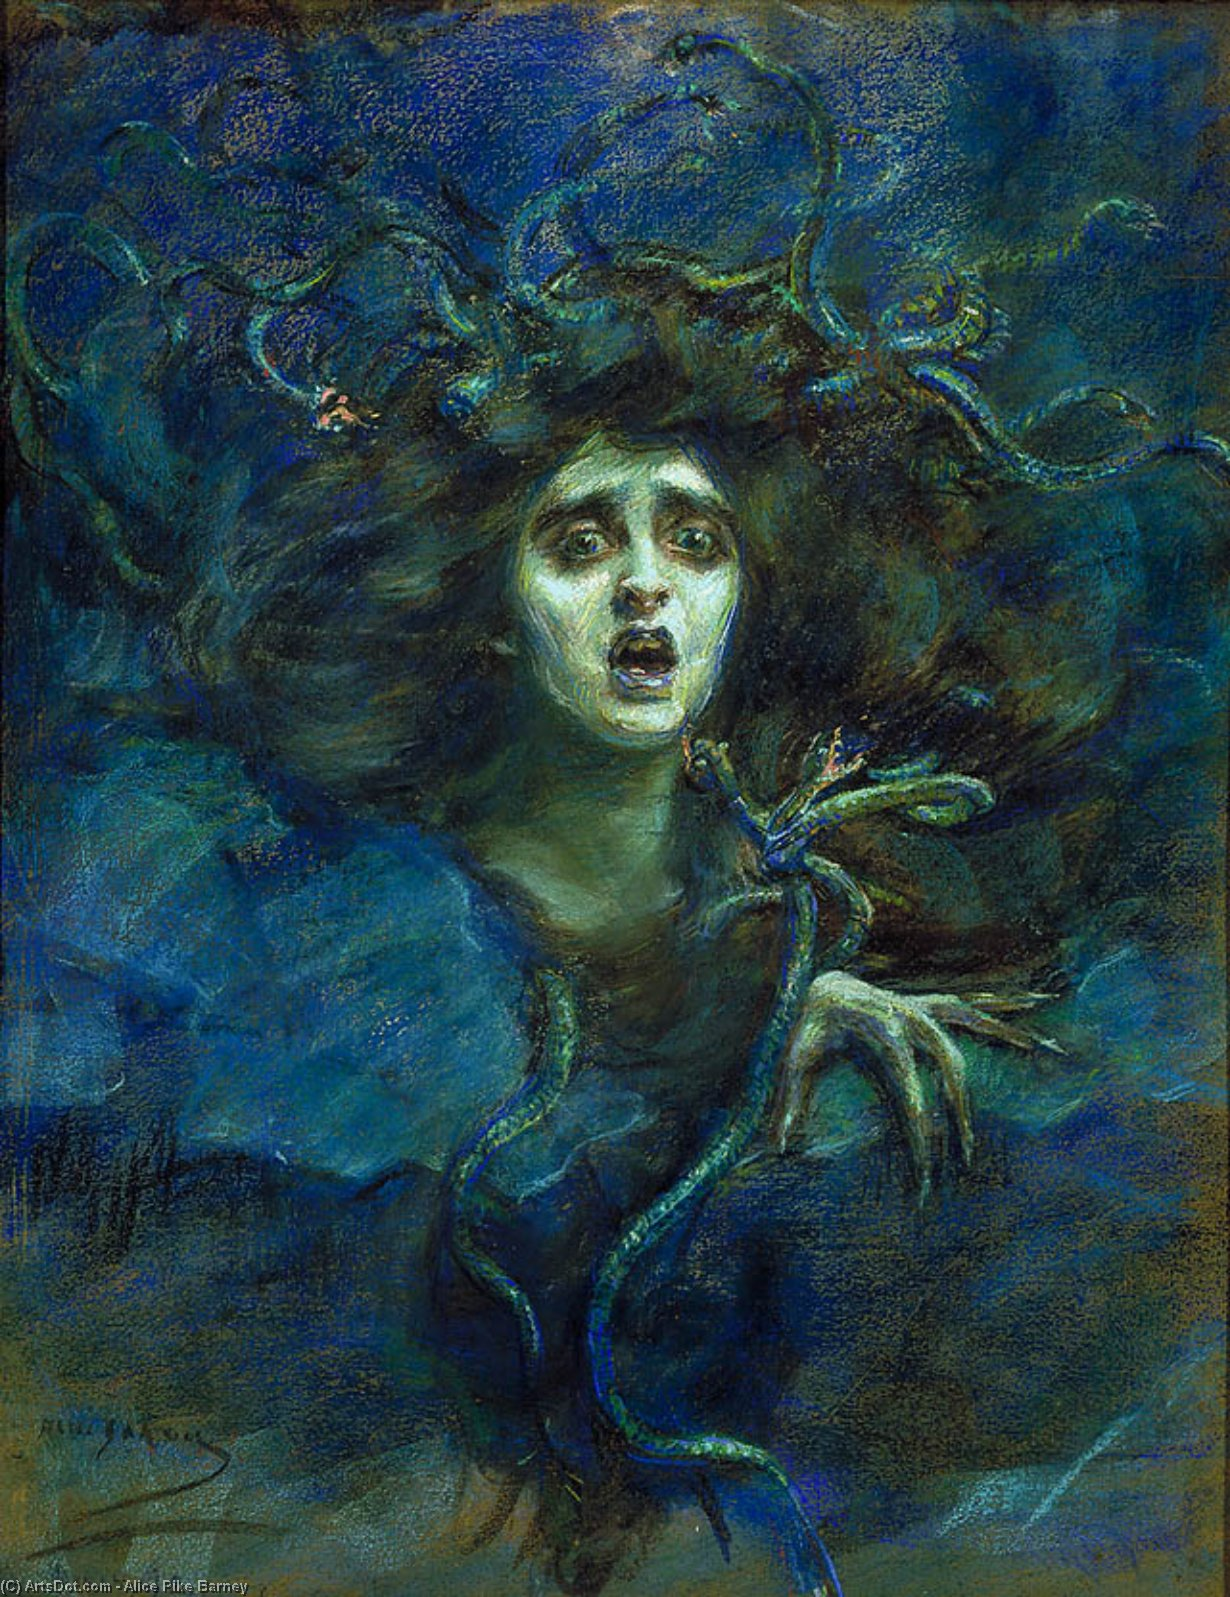 Medusa (also known as Laura Dreyfus Barney), 1892 by Alice Pike Barney (1857-1931, United States) | Museum Art Reproductions Alice Pike Barney | ArtsDot.com